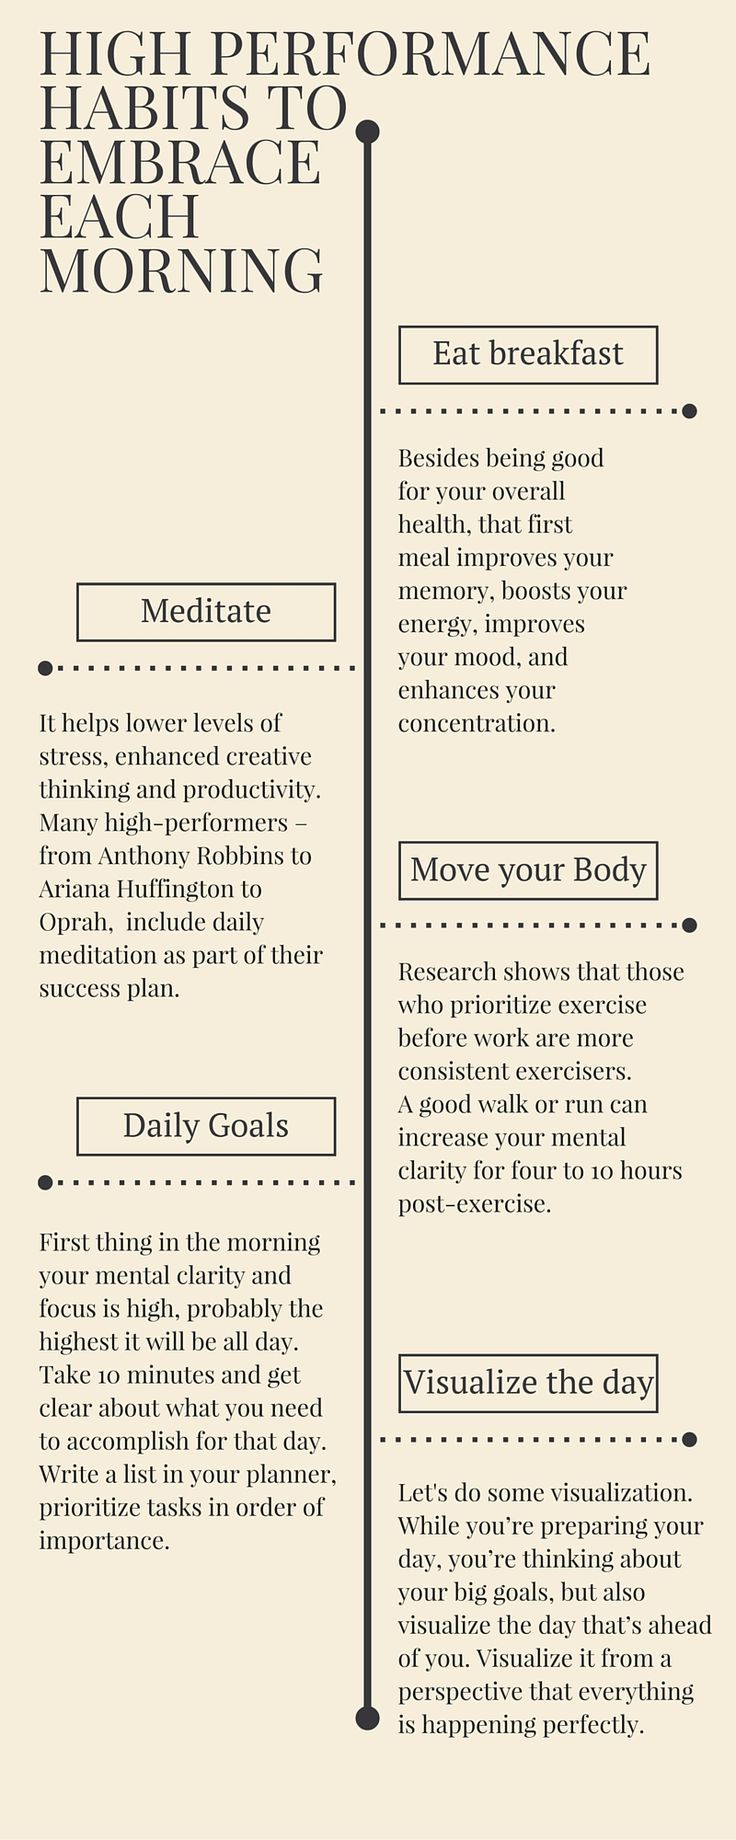 Nice graphic to prepare for the week with less stress and more opportunity to set your intention and meet your expectations. High performance habits to embrace in the morning: